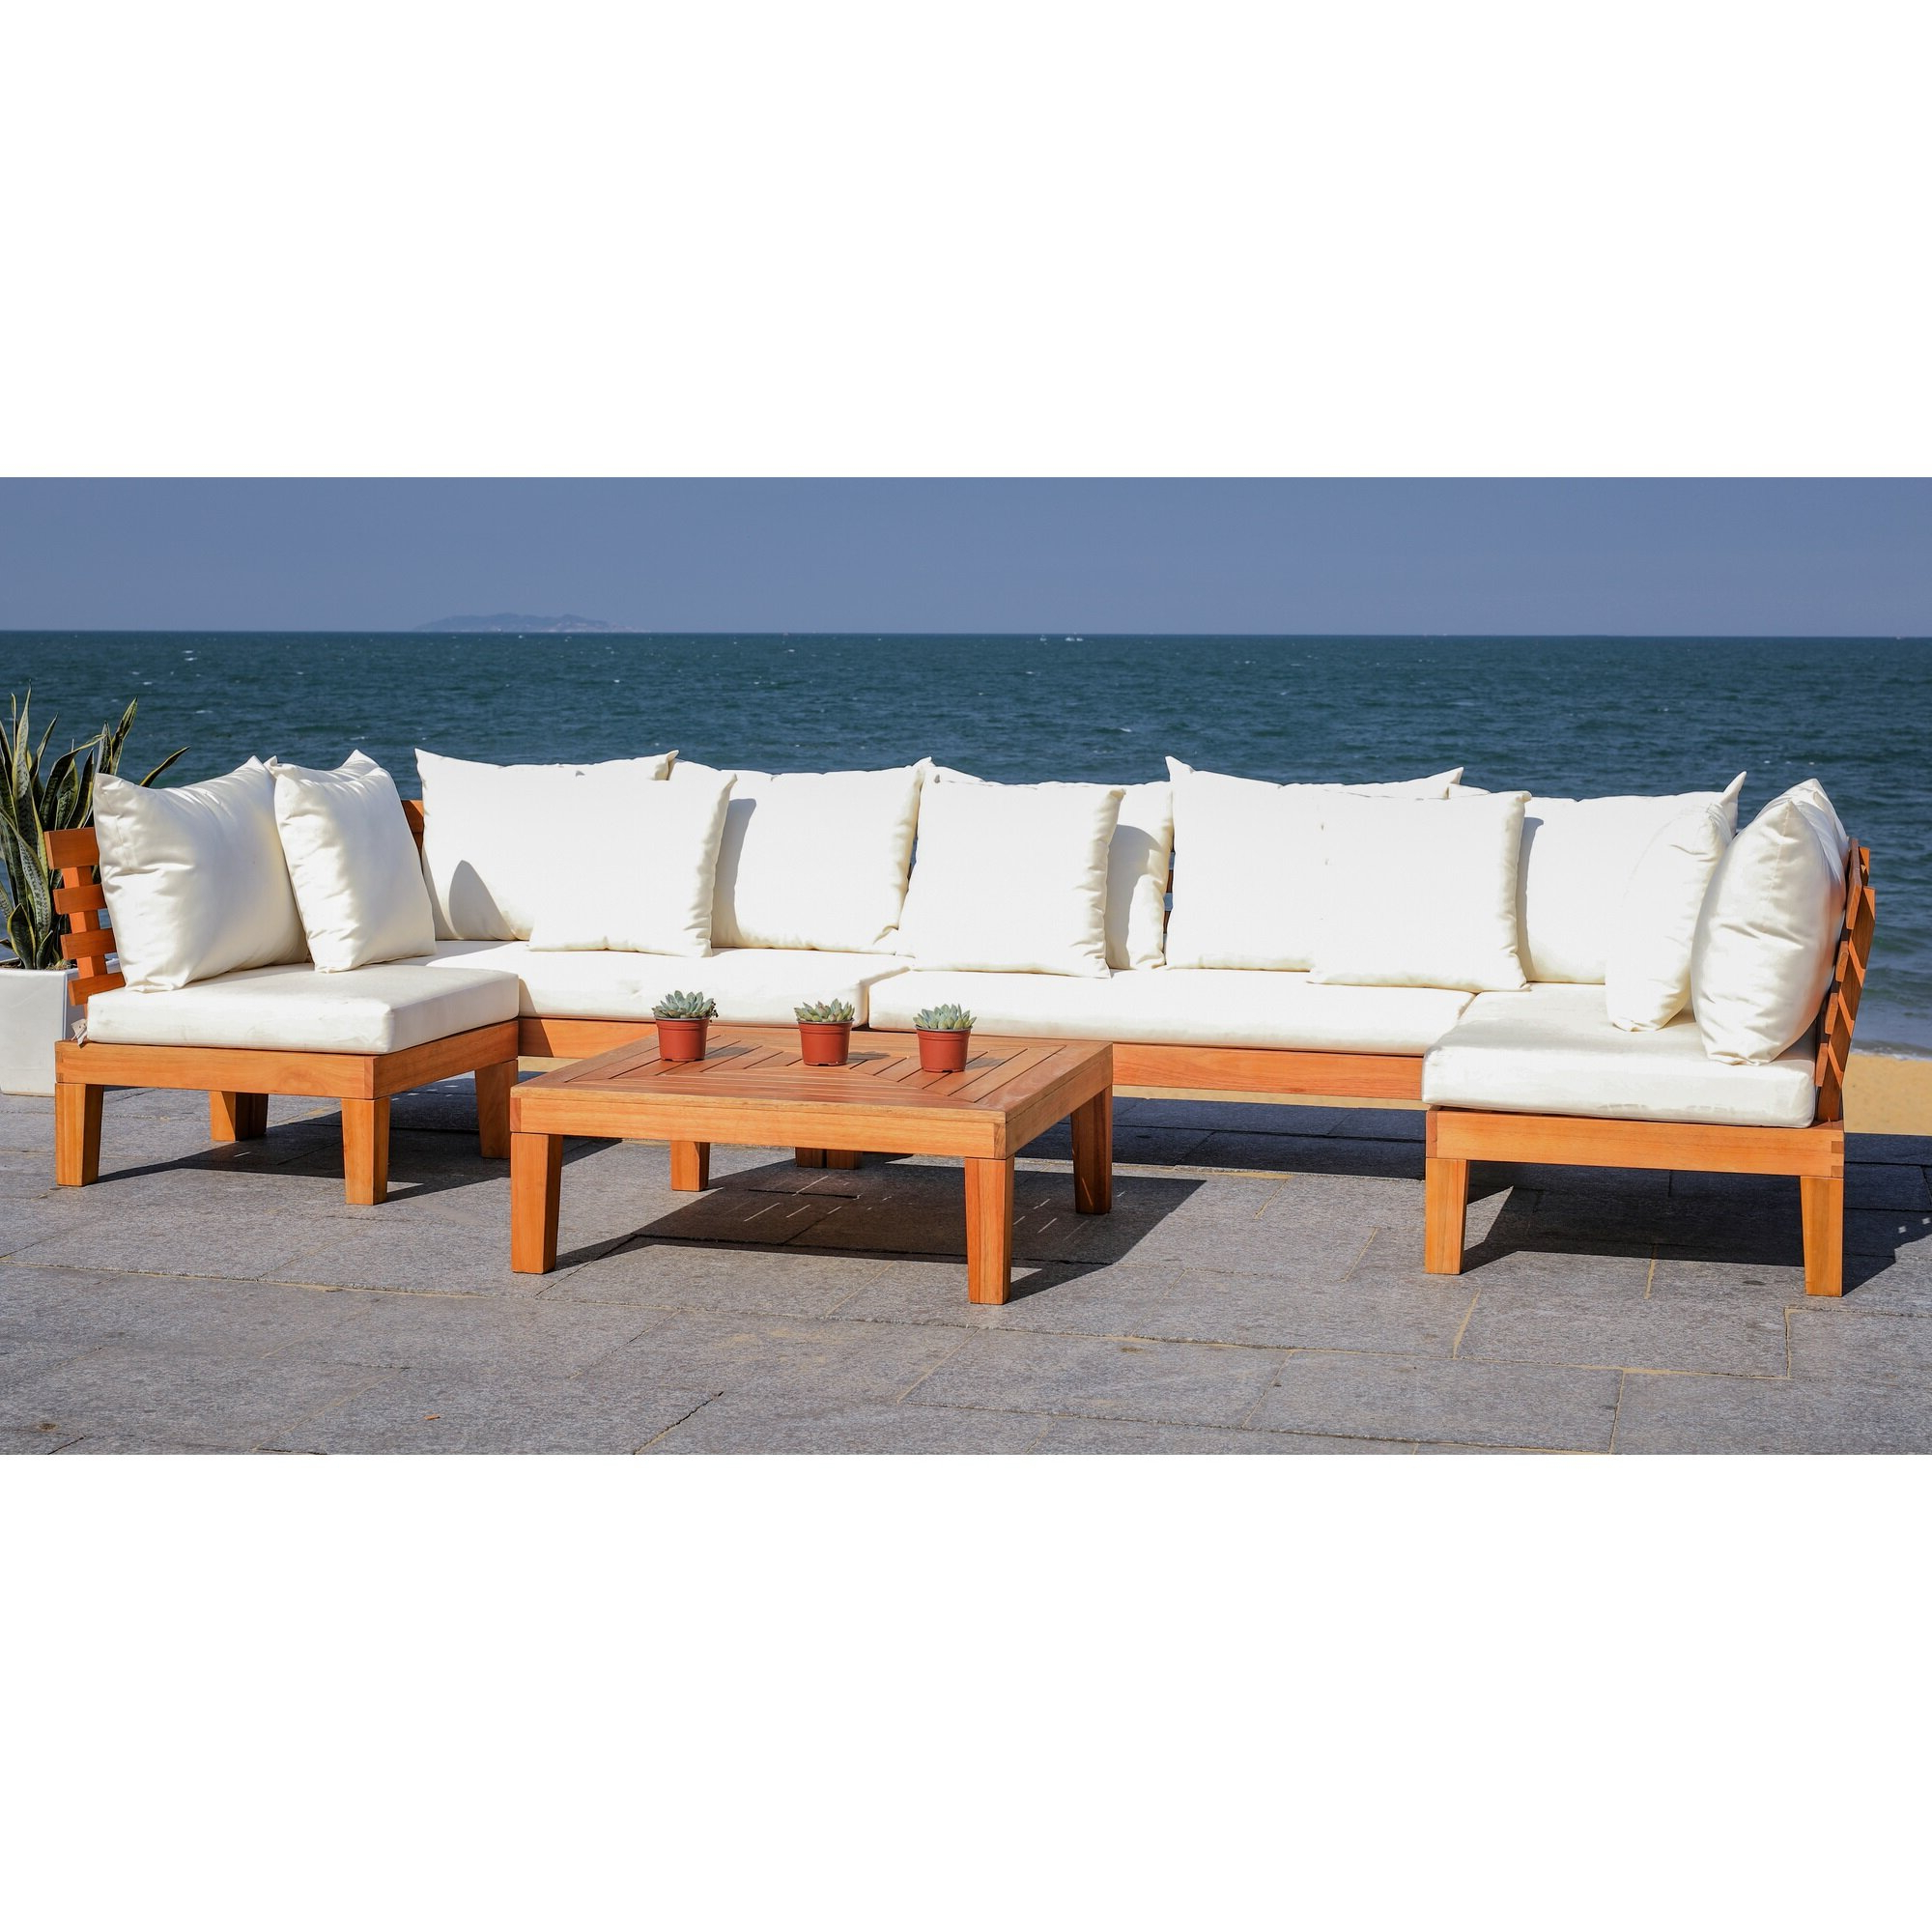 Most Popular Greta Living Patio Sectional With Cushions In Tess Corner Living Patio Sectionals With Cushions (View 2 of 20)